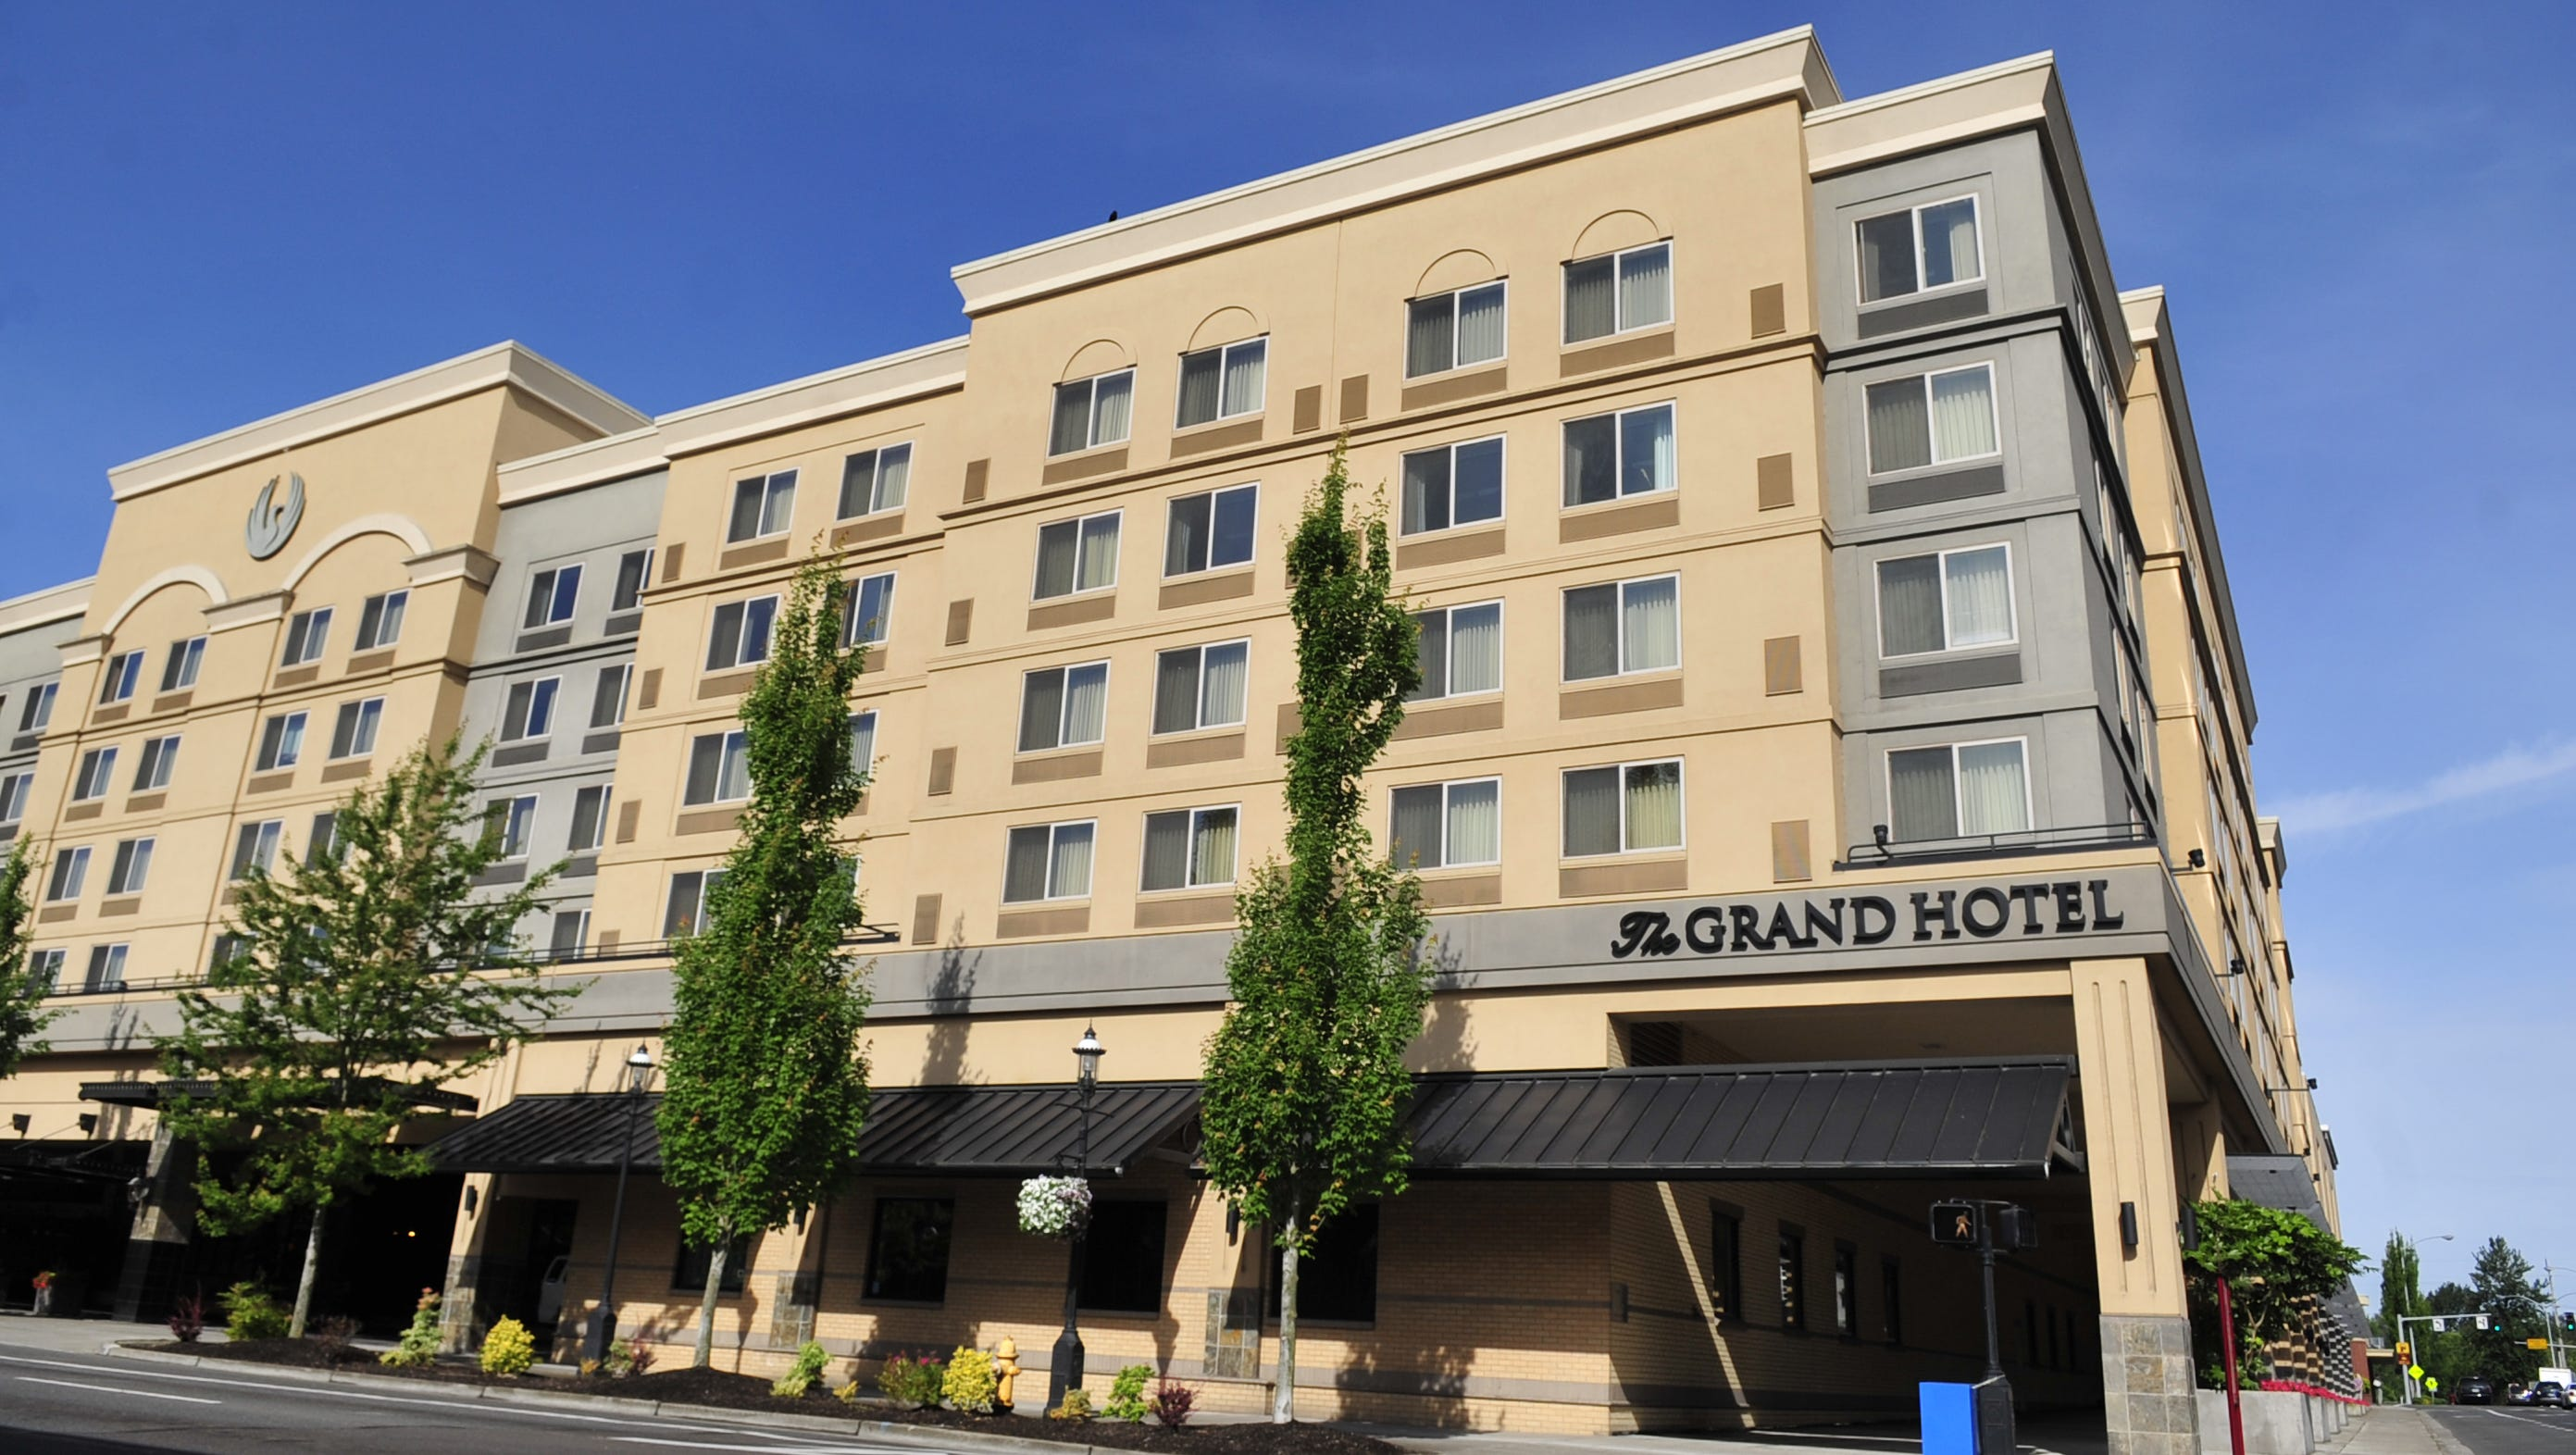 Grand Hotel To Pay Customers For Eclipse Reservation Problems